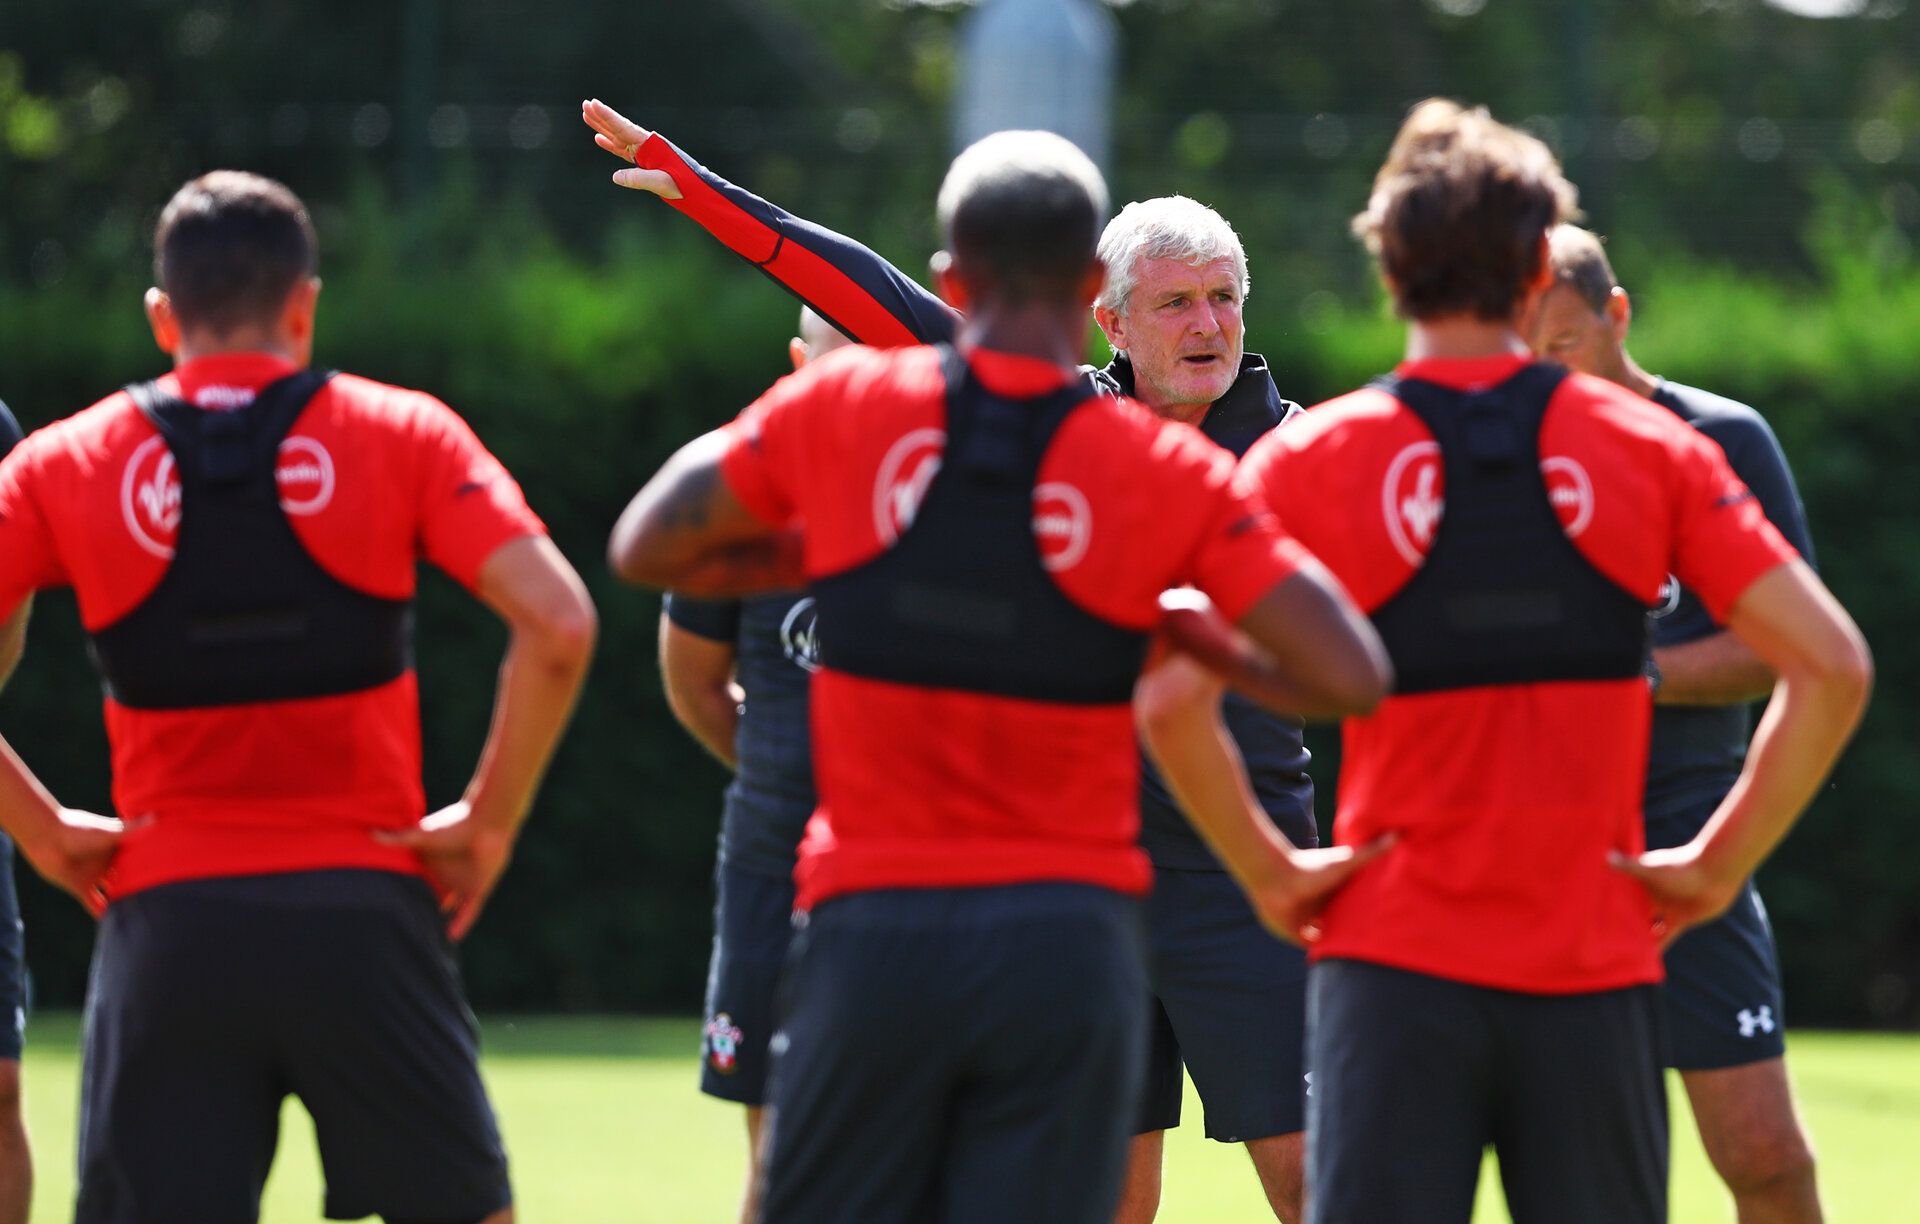 SOUTHAMPTON, ENGLAND - AUGUST 08: Mark Hughes during a Southampton FC training session at The Staplewood Campus on August 8, 2018 in Southampton, England. (Photo by Matt Watson/Southampton FC via Getty Images)